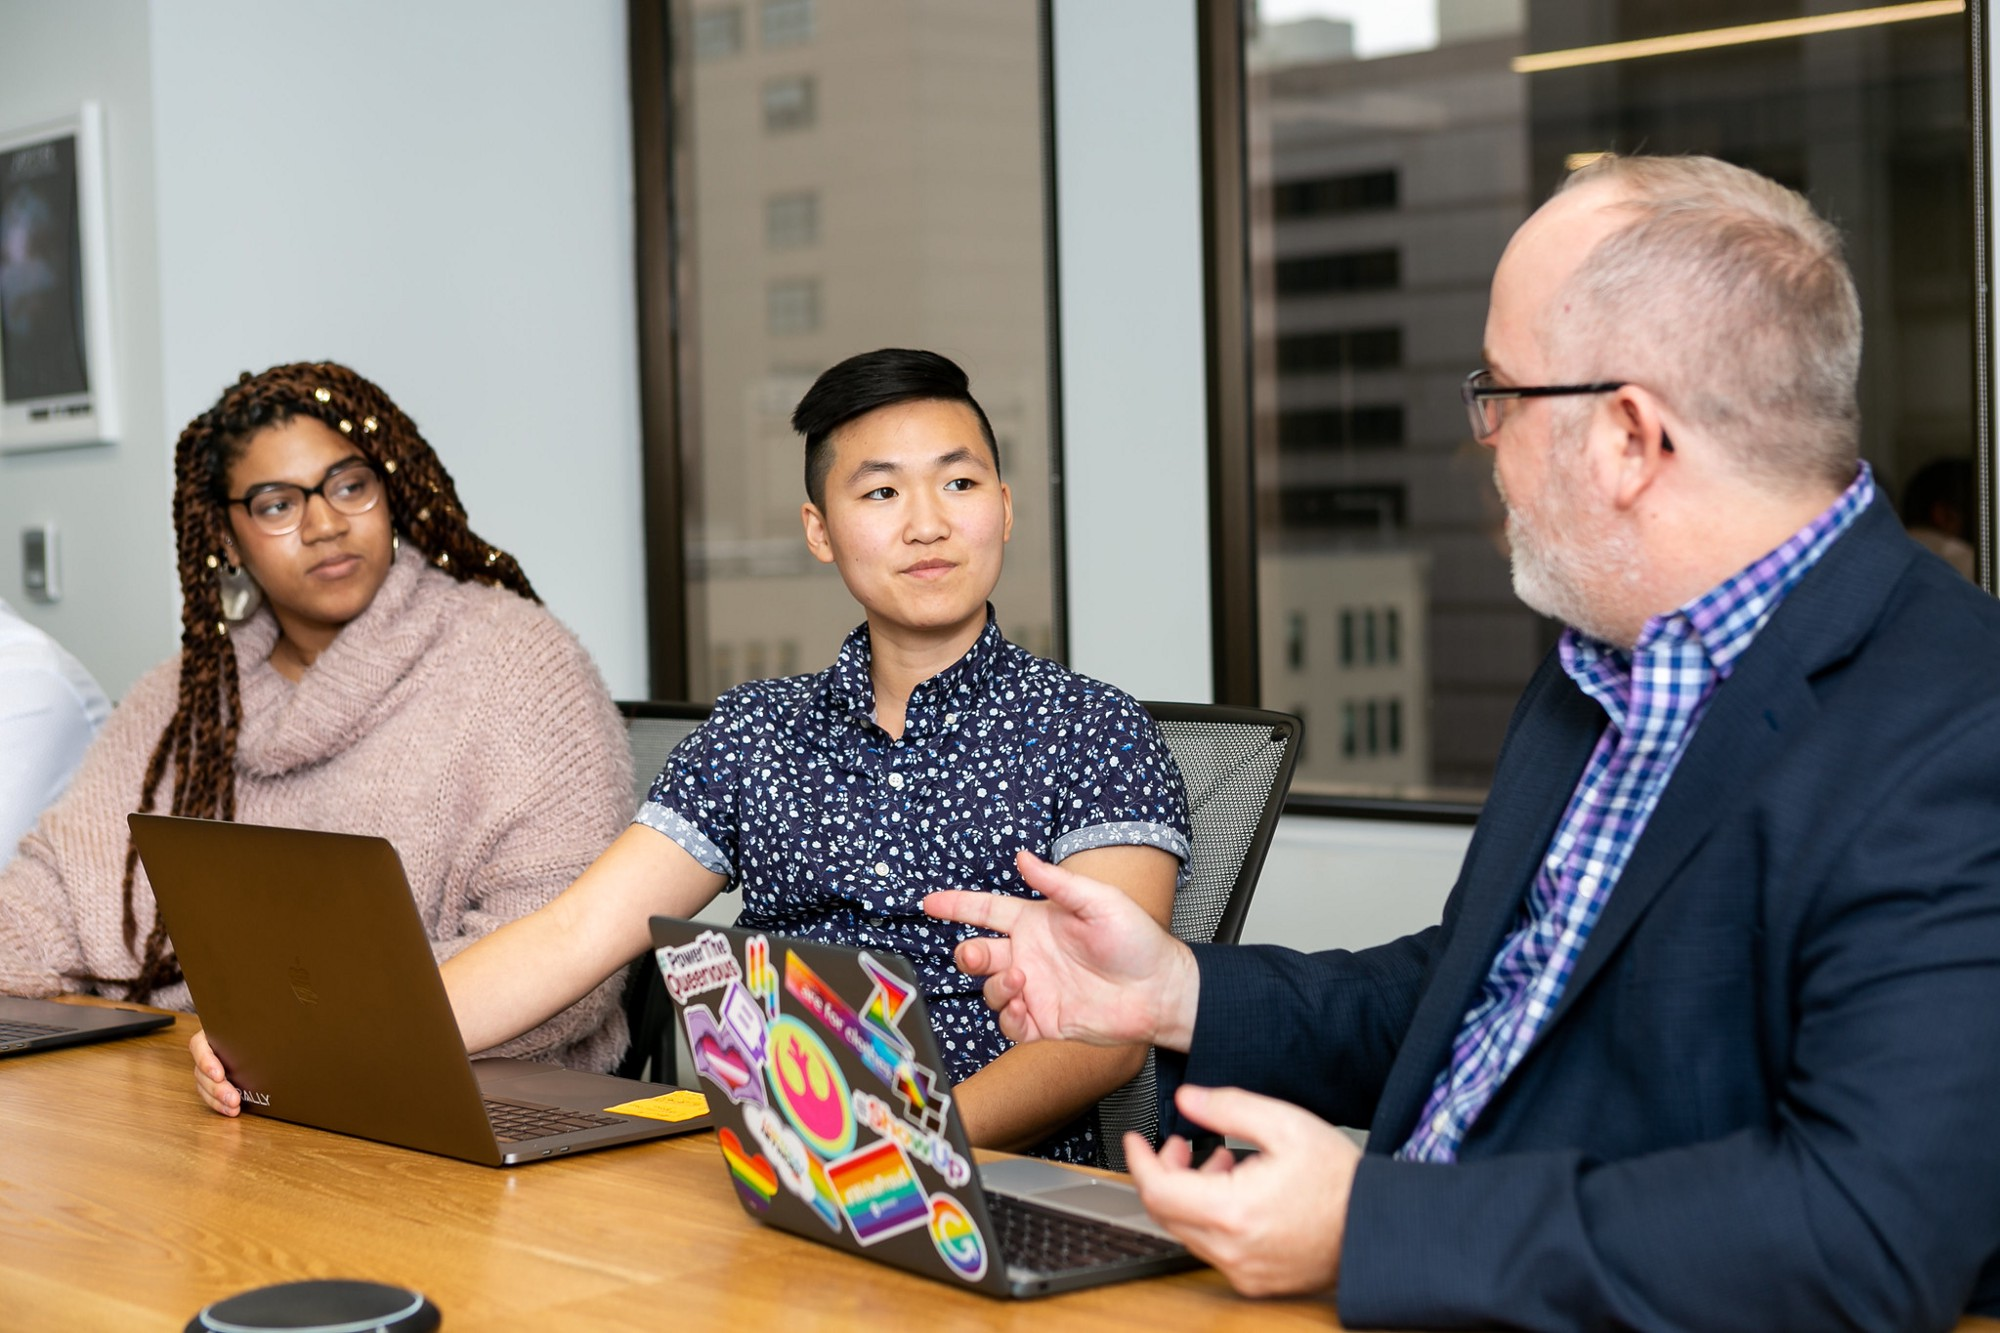 3 people, sitting at a conference table, with their laptops, talking to each other